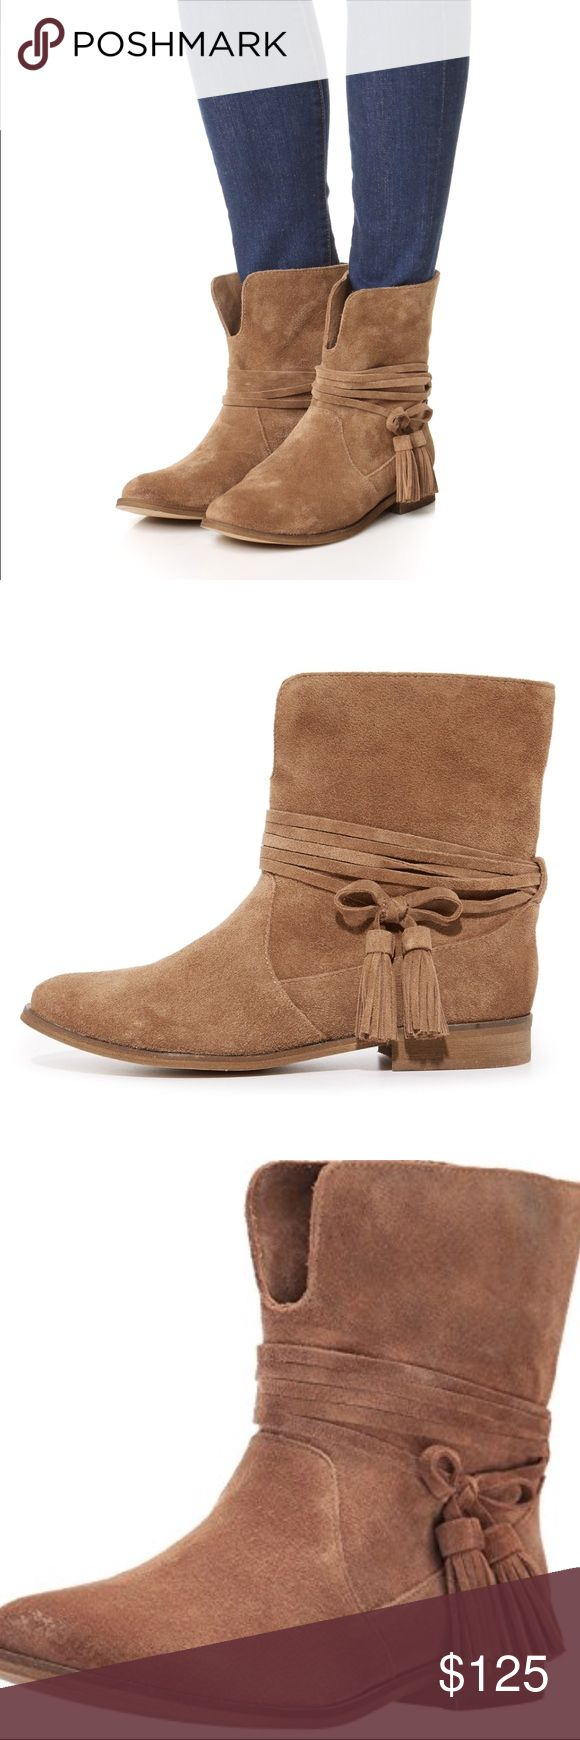 NEW Splendid Penny Tassel Dark Brown Bootie 9.5 Brand new. I don't have the box. Splendid Shoes Ankle Boots & Booties